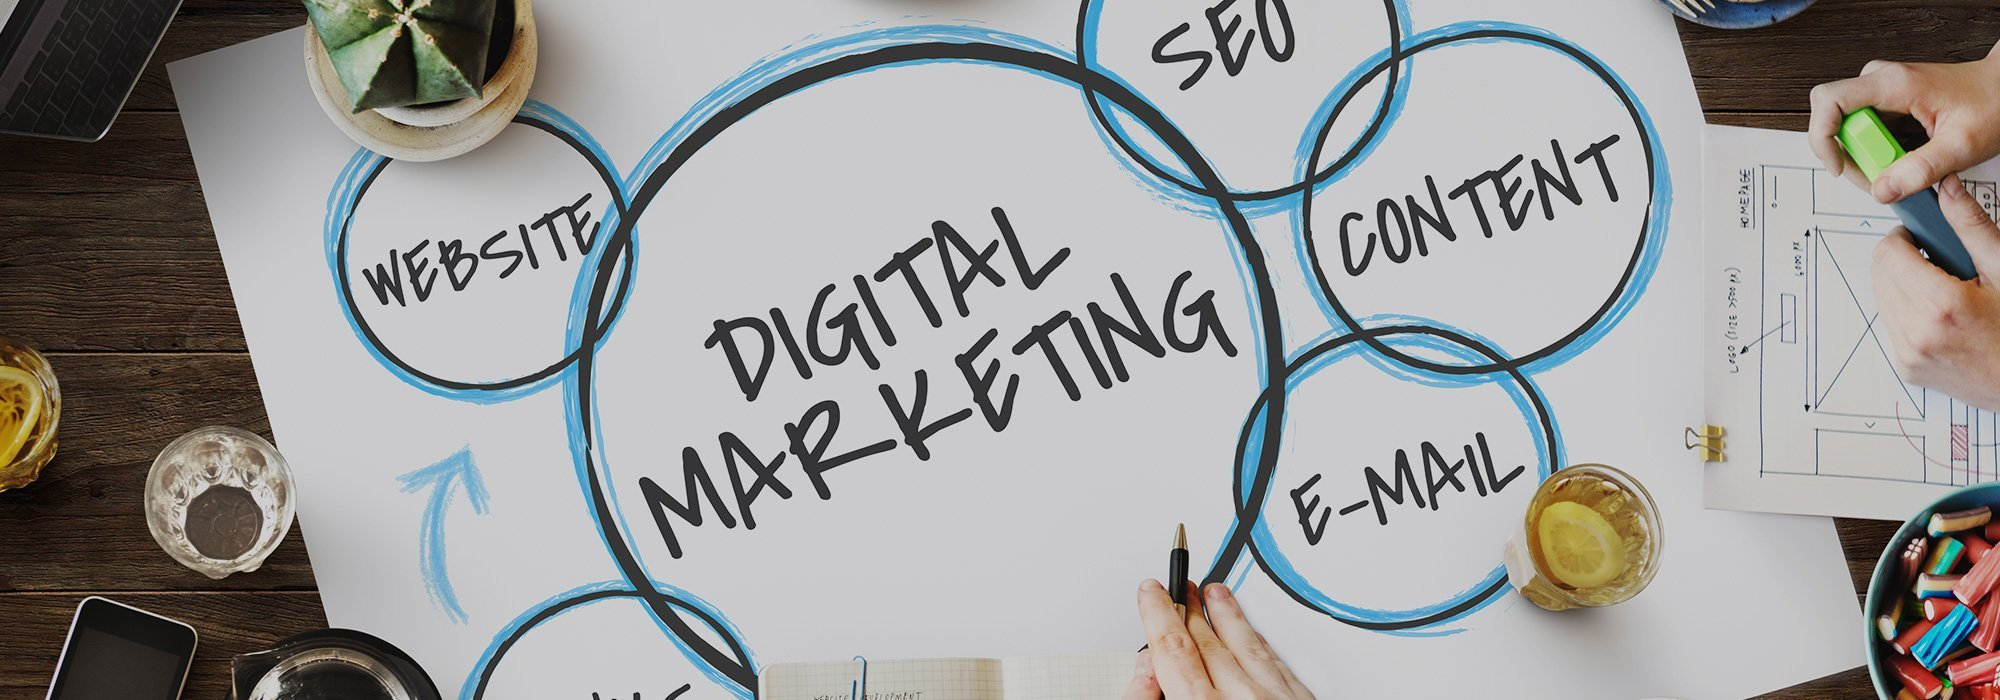 6 Trend del Digital Marketing che devi assolutamente leggere